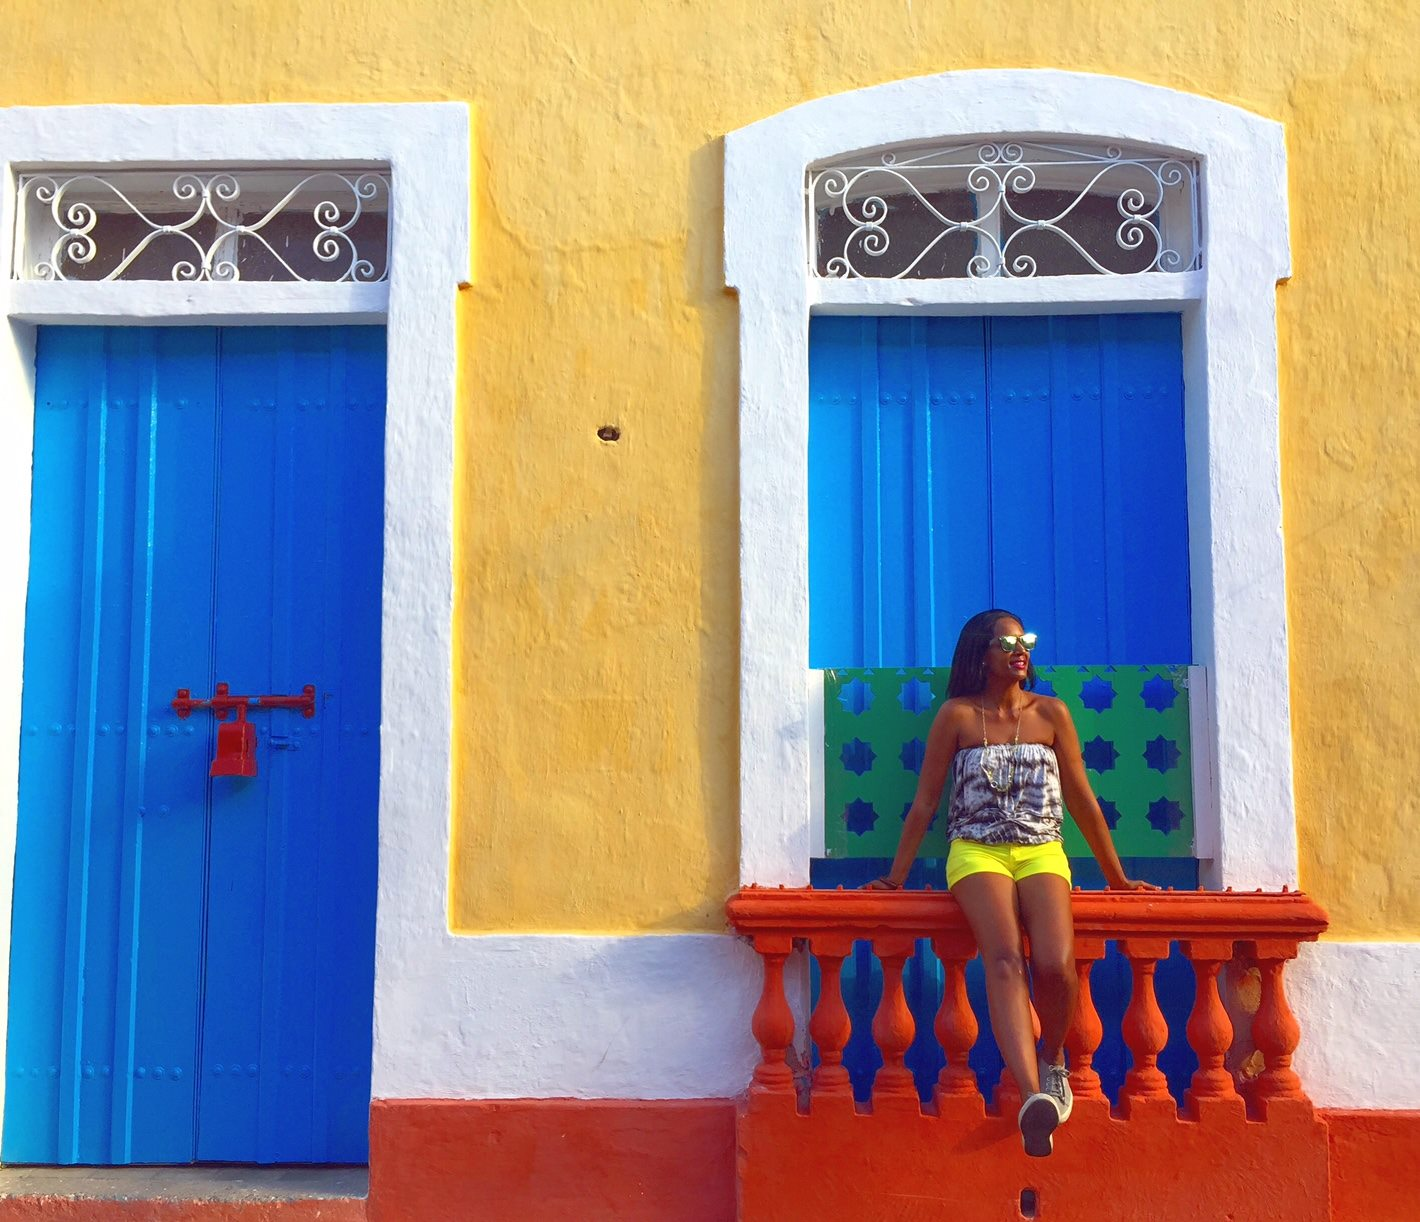 Lily Girma has authored several guidebooks on the Caribbean. She also writes for Lonely Planet, AFAR, and other great travel publications, and partners with different tourism boards. All photos in this article are  courtesy of Lily .